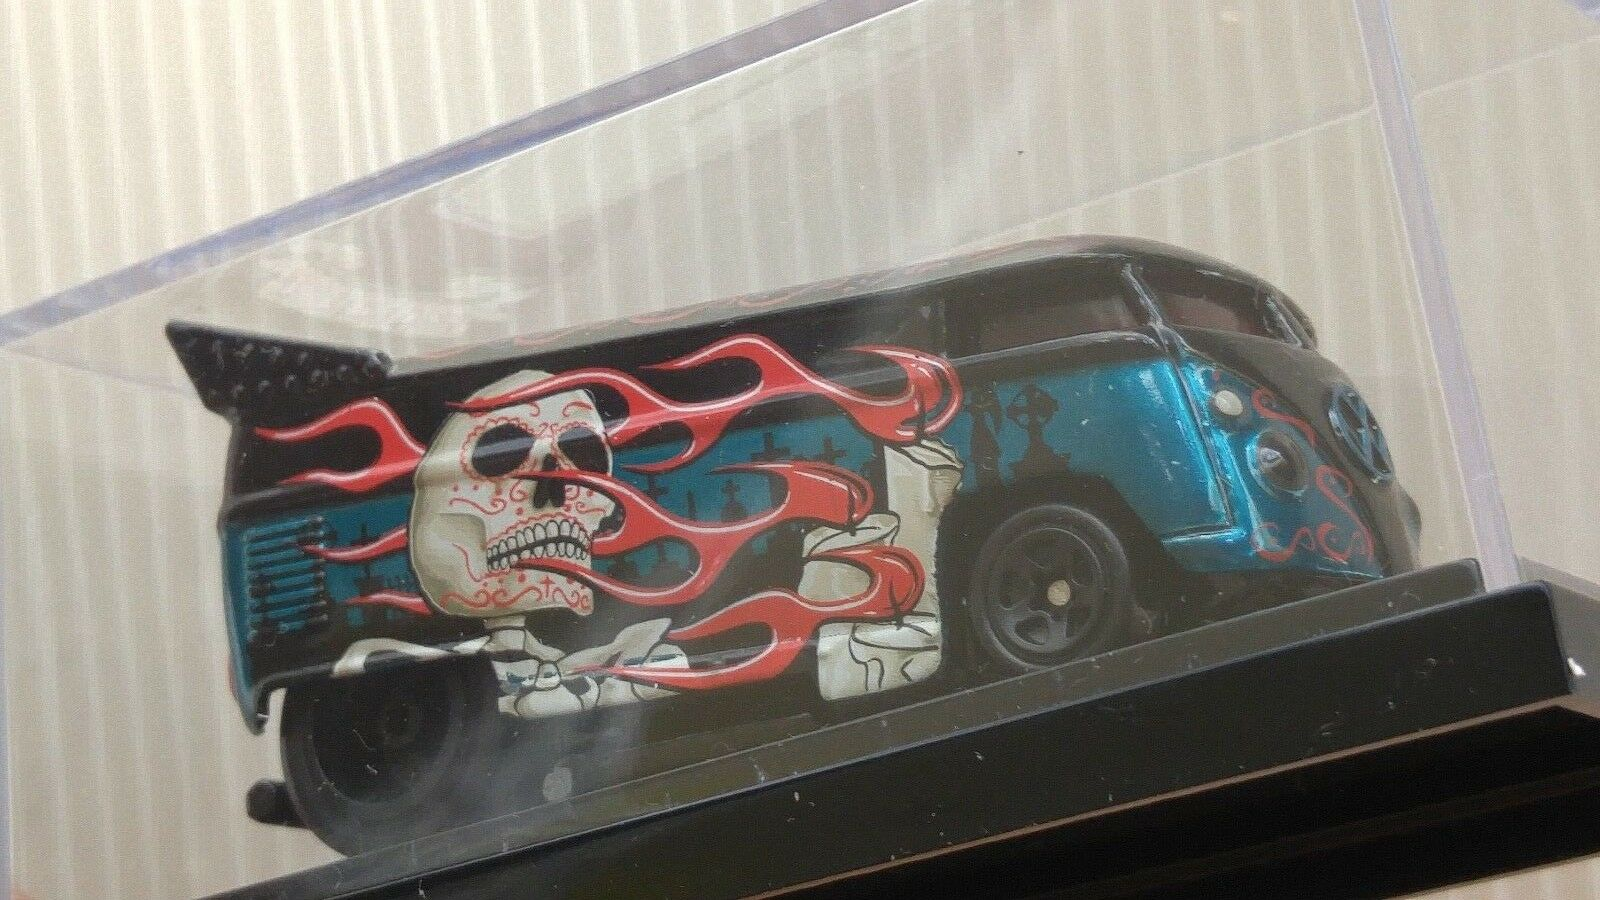 Hot Wheels Liberty Promotions Halloween VW DRAG BUS Day of the Dead 0937 1000